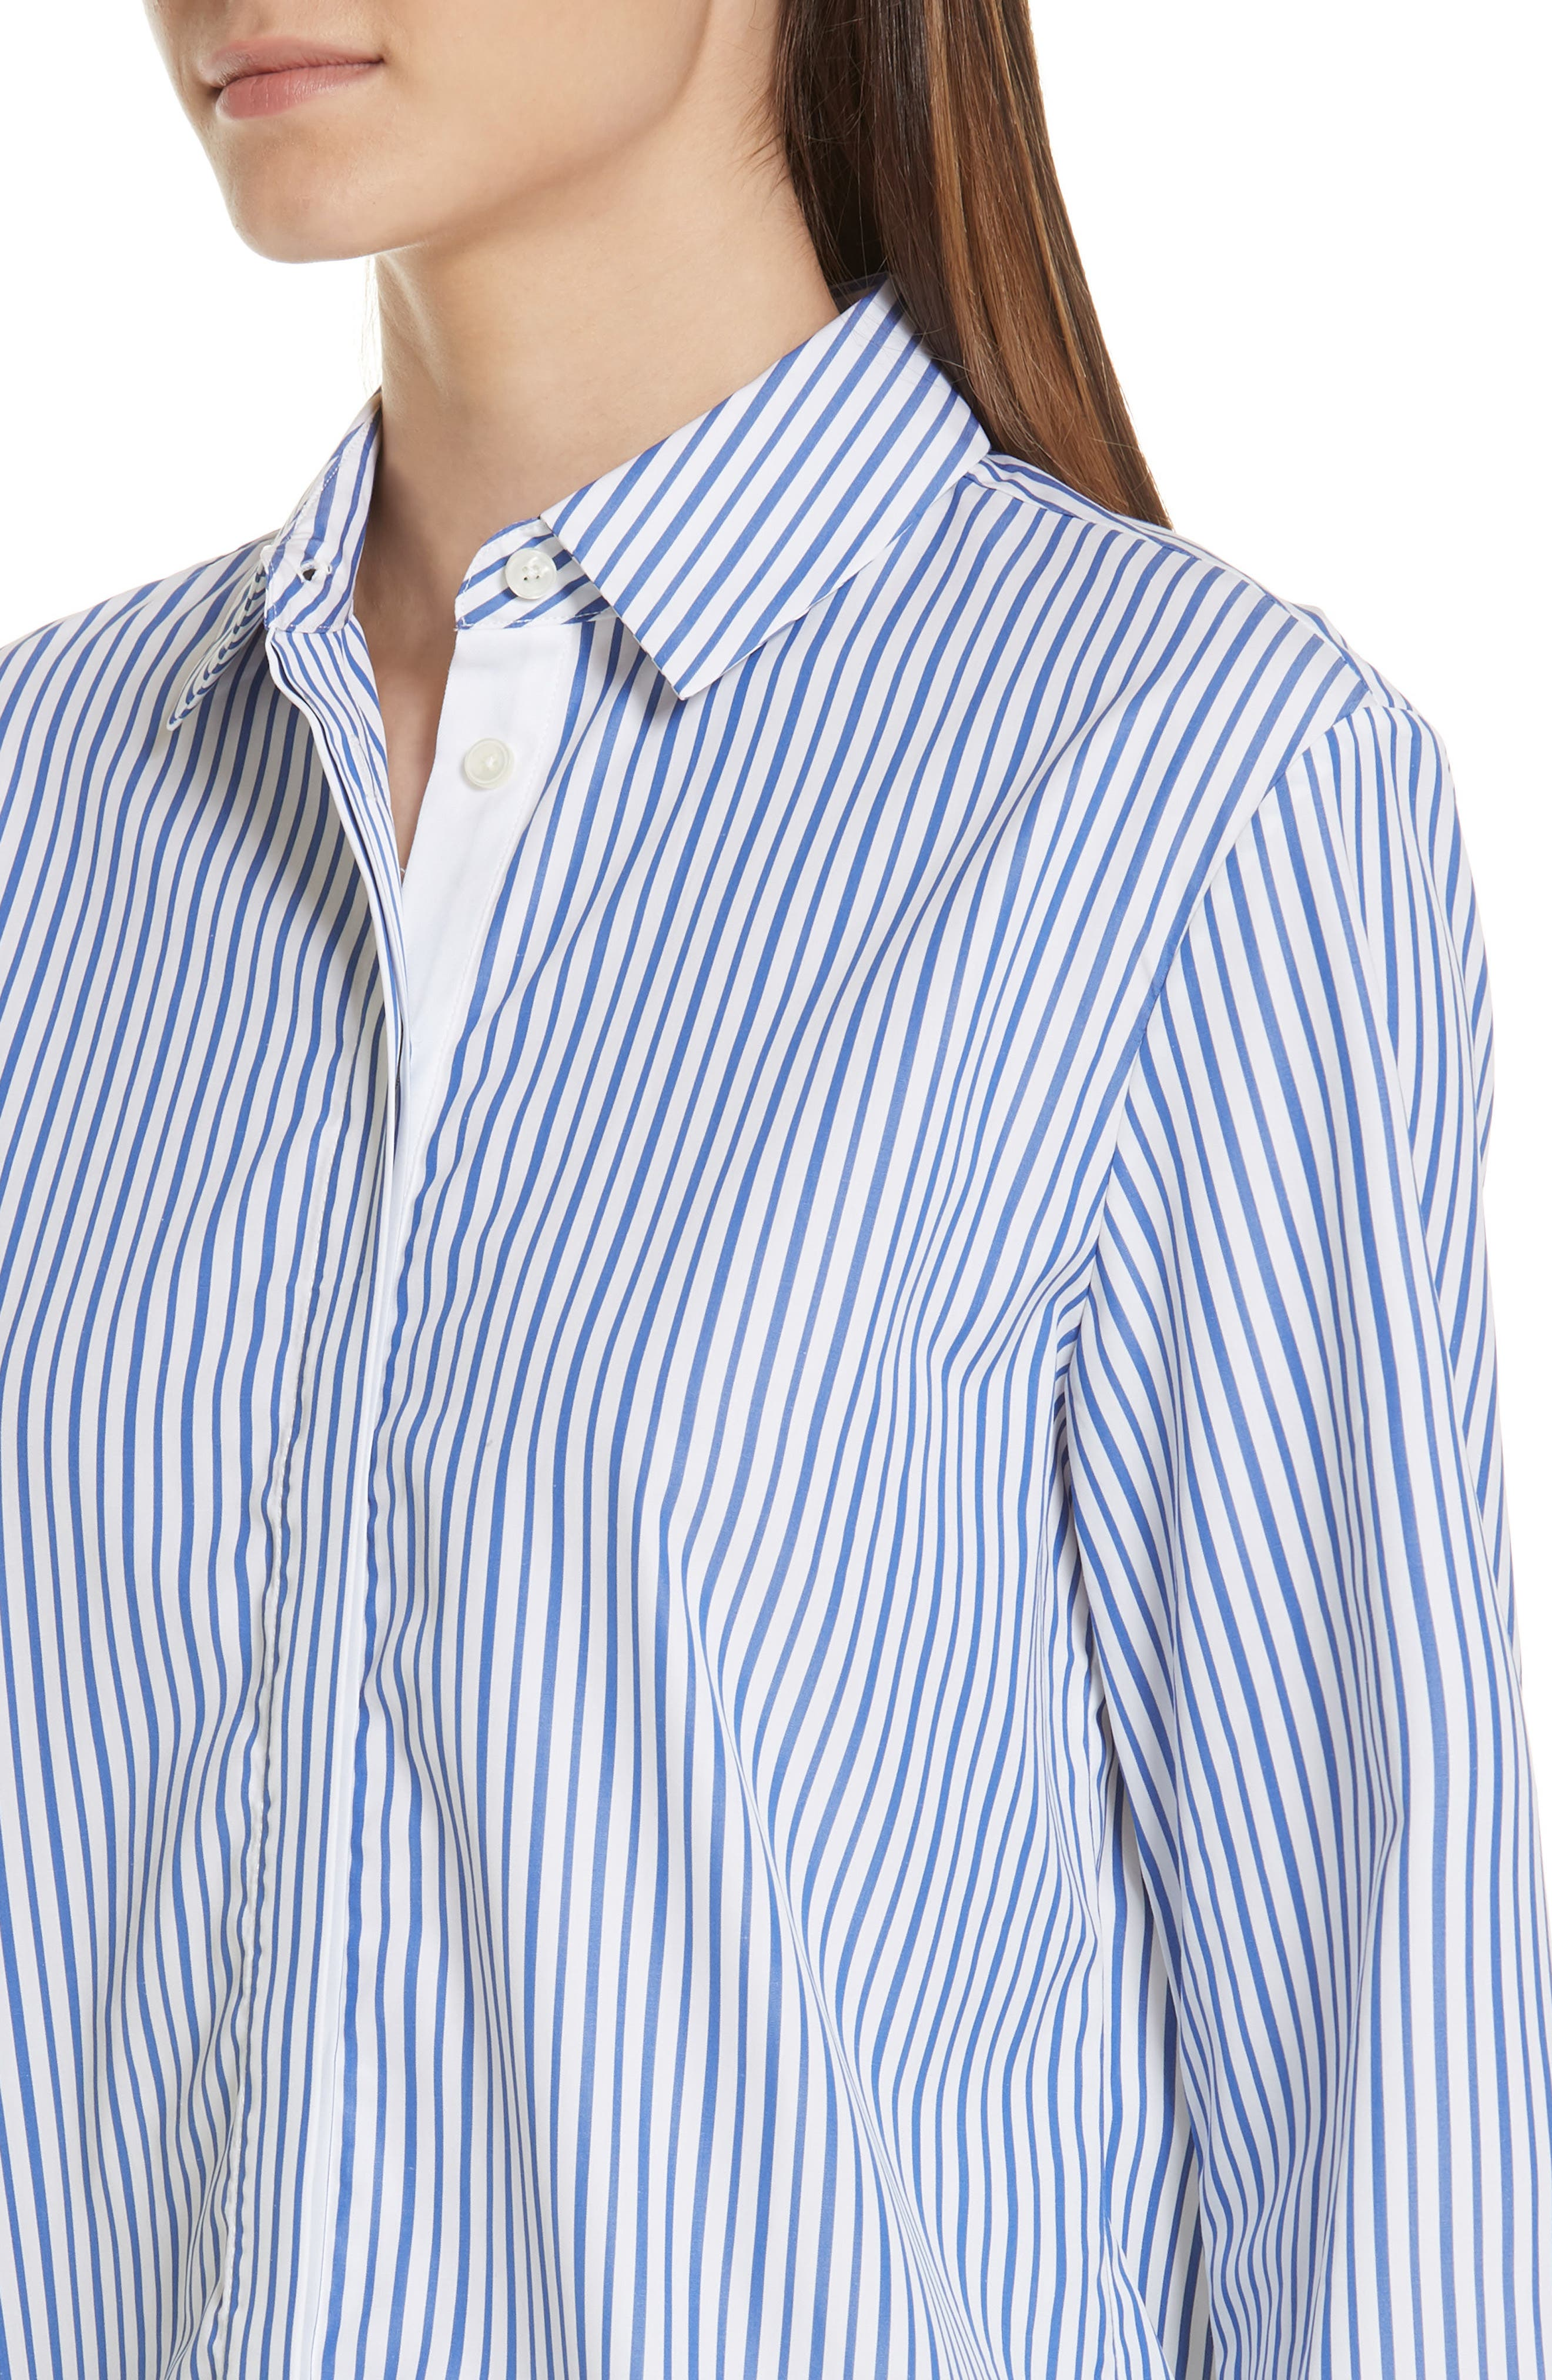 Bleu Man Shirt,                             Alternate thumbnail 4, color,                             BLUE AND WHITE STRIPES